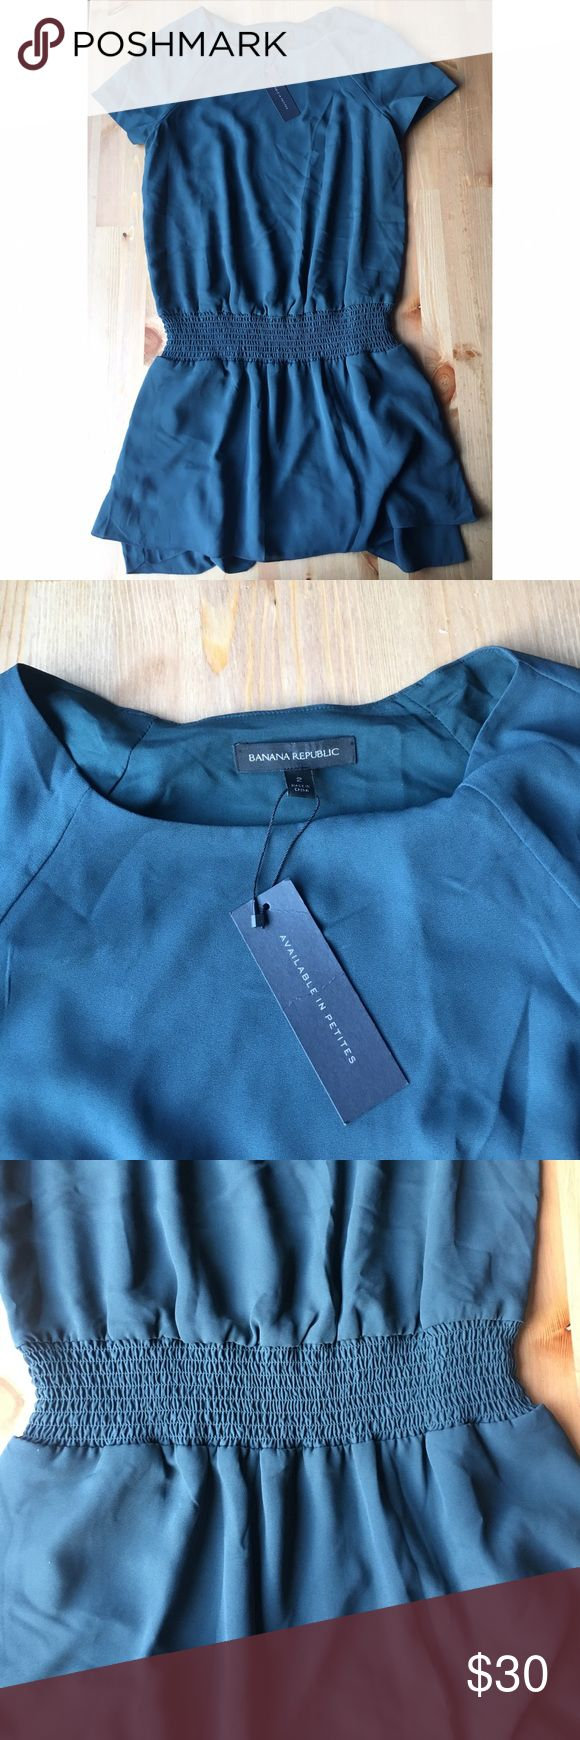 """NWT Banana Republic Dress NWT! This is a beautiful deep teal.  Has elastic dropped waist and short sleeves. Tiered ruffle skirt. 34"""" long. Perfect as a dress or as a tunic with leggings underneath! Banana Republic Dresses"""